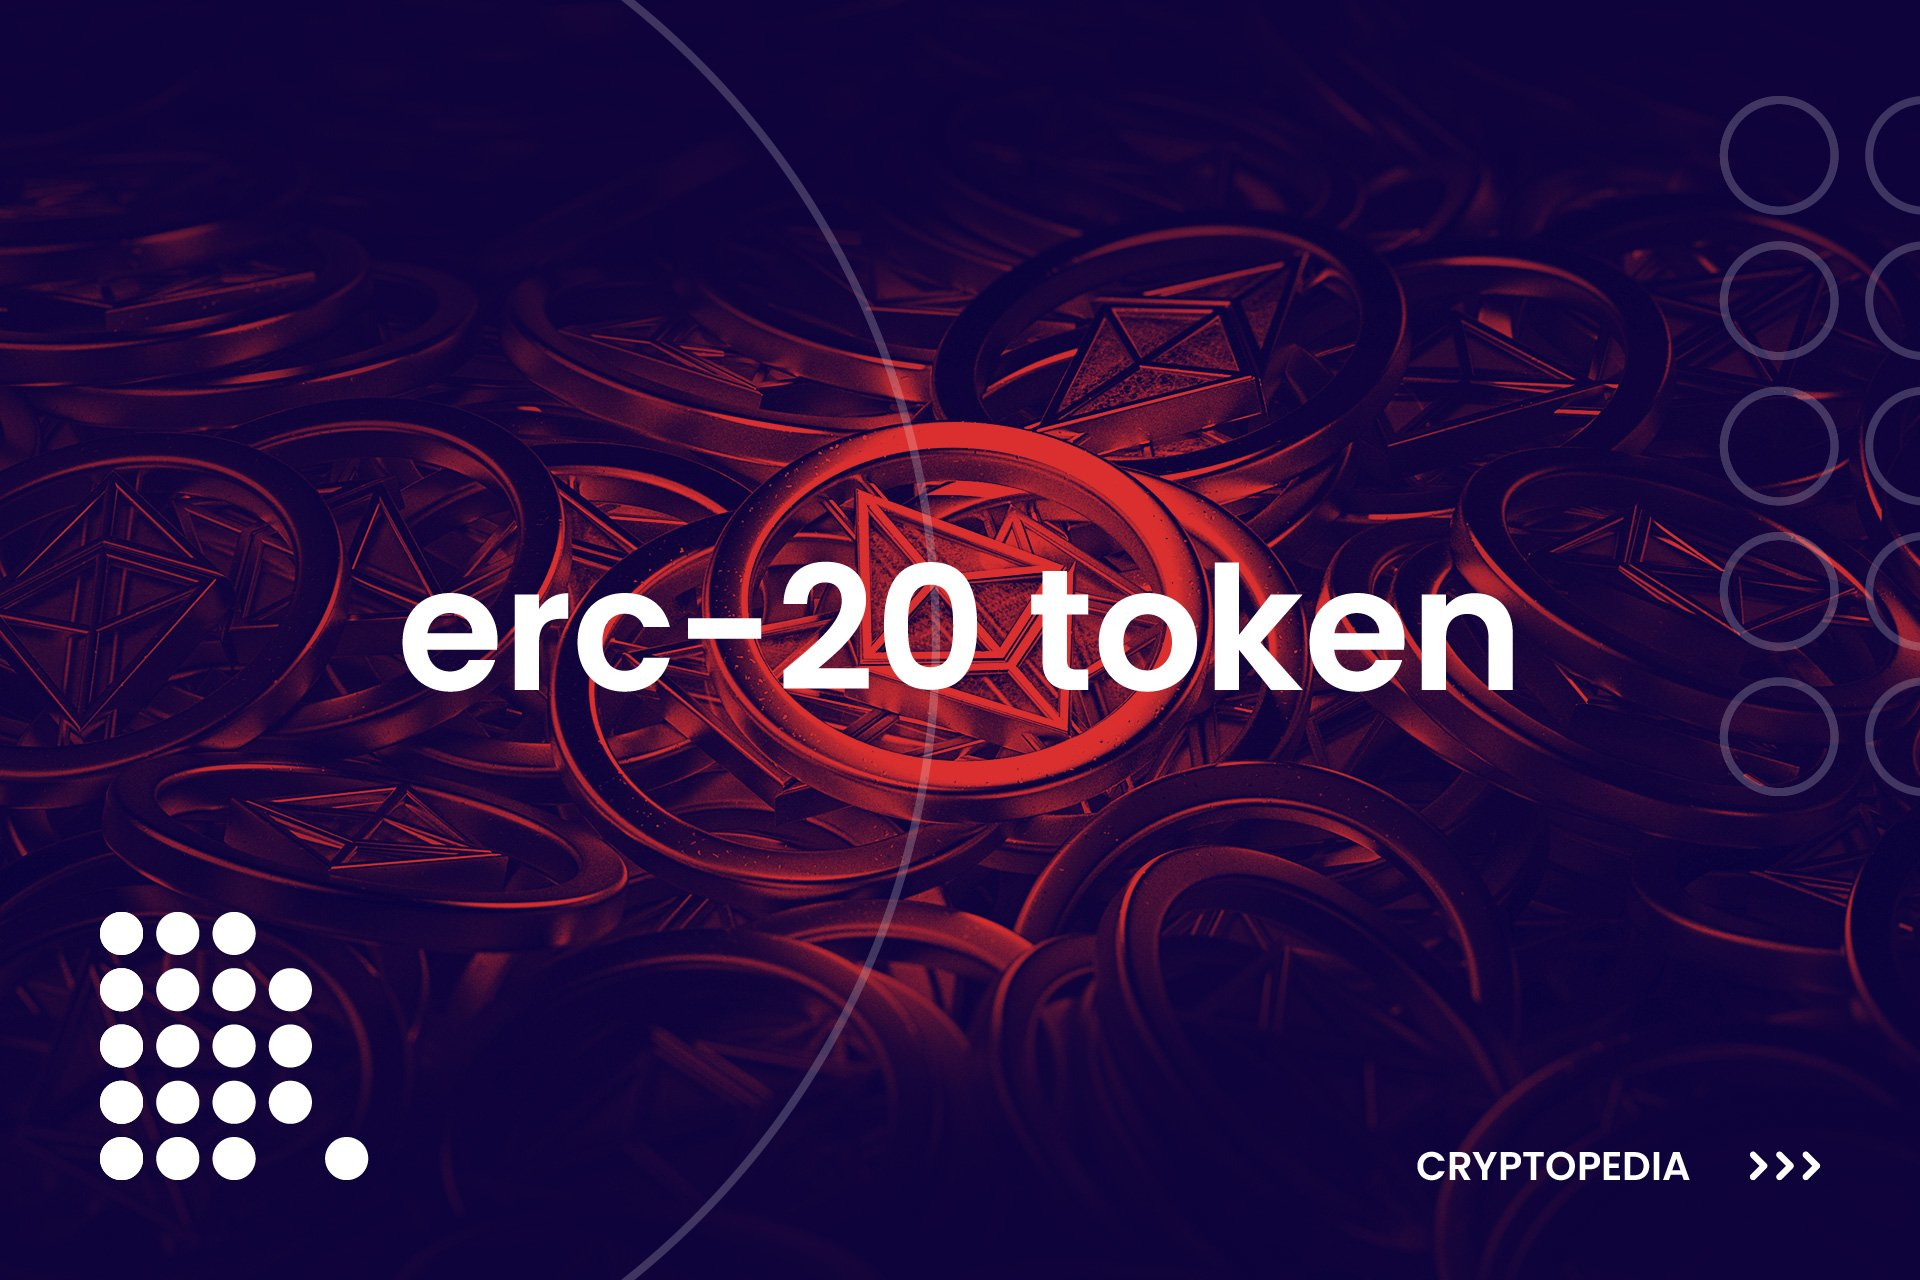 What is erc-20 token?